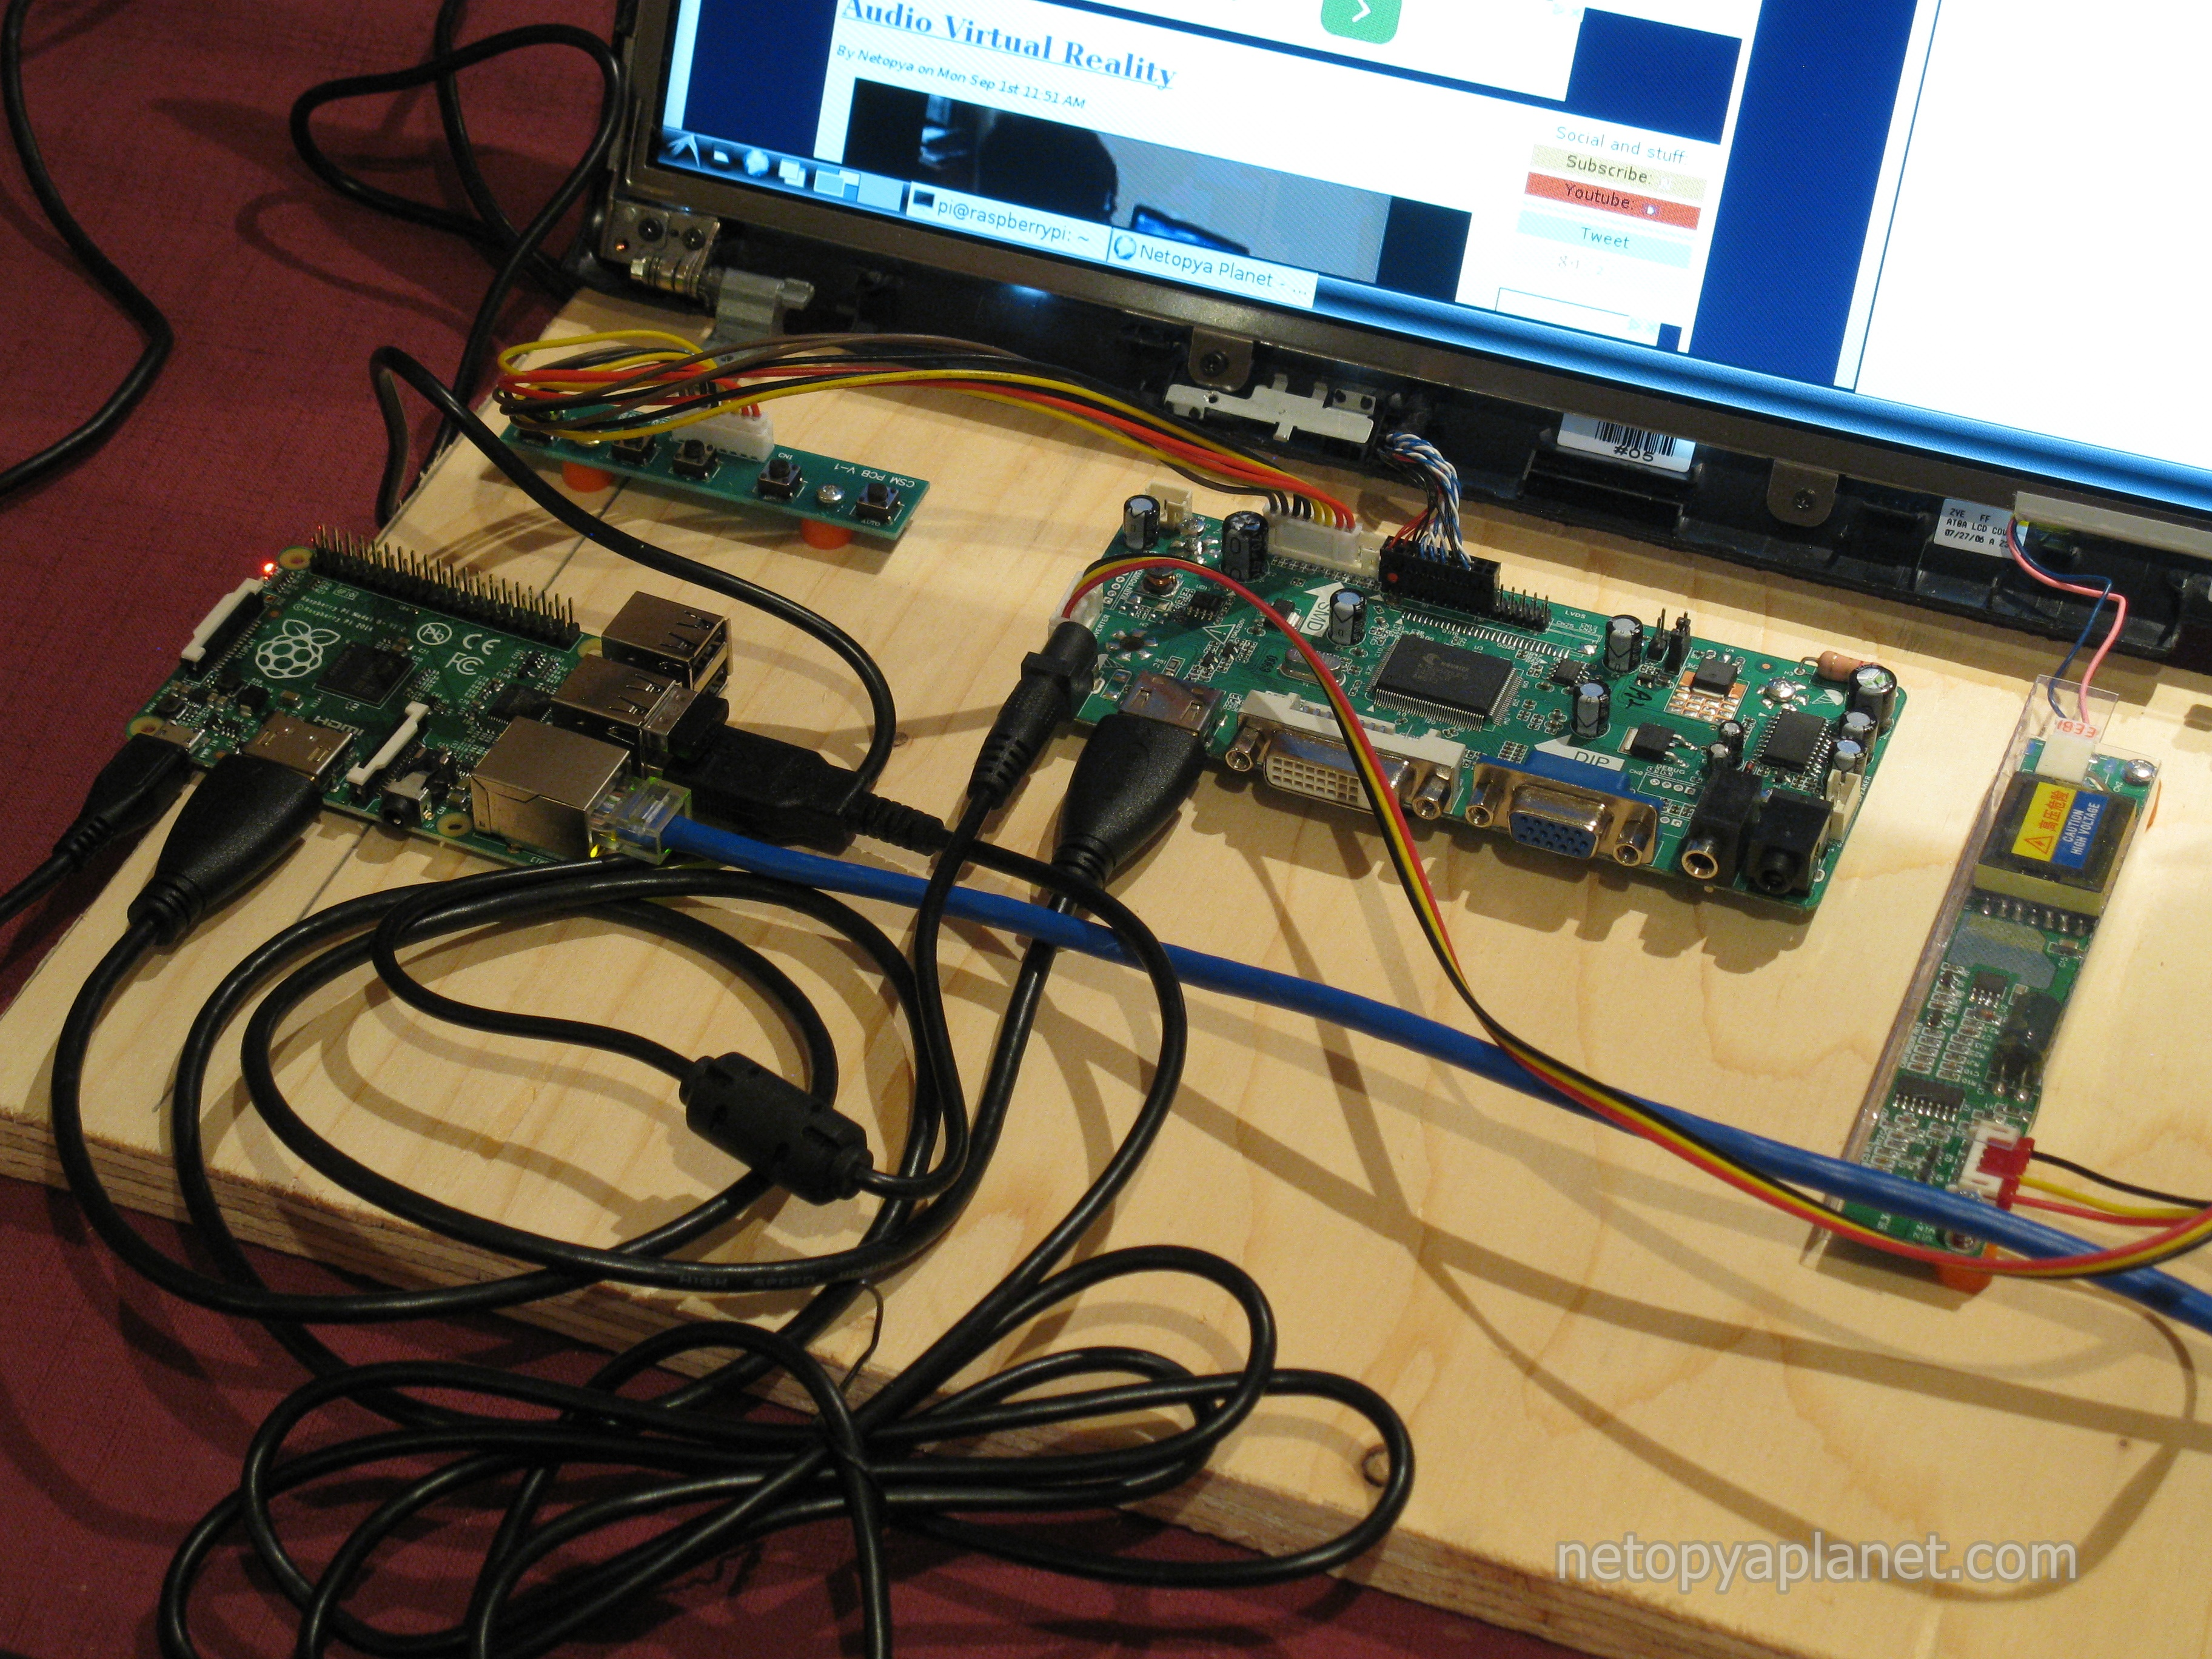 Netopya Planet Recycling A Laptop Lcd Screen Into Raspberry Pi Recycled Circuit Board Small Notebook Boards Closeup View Of The Controller With